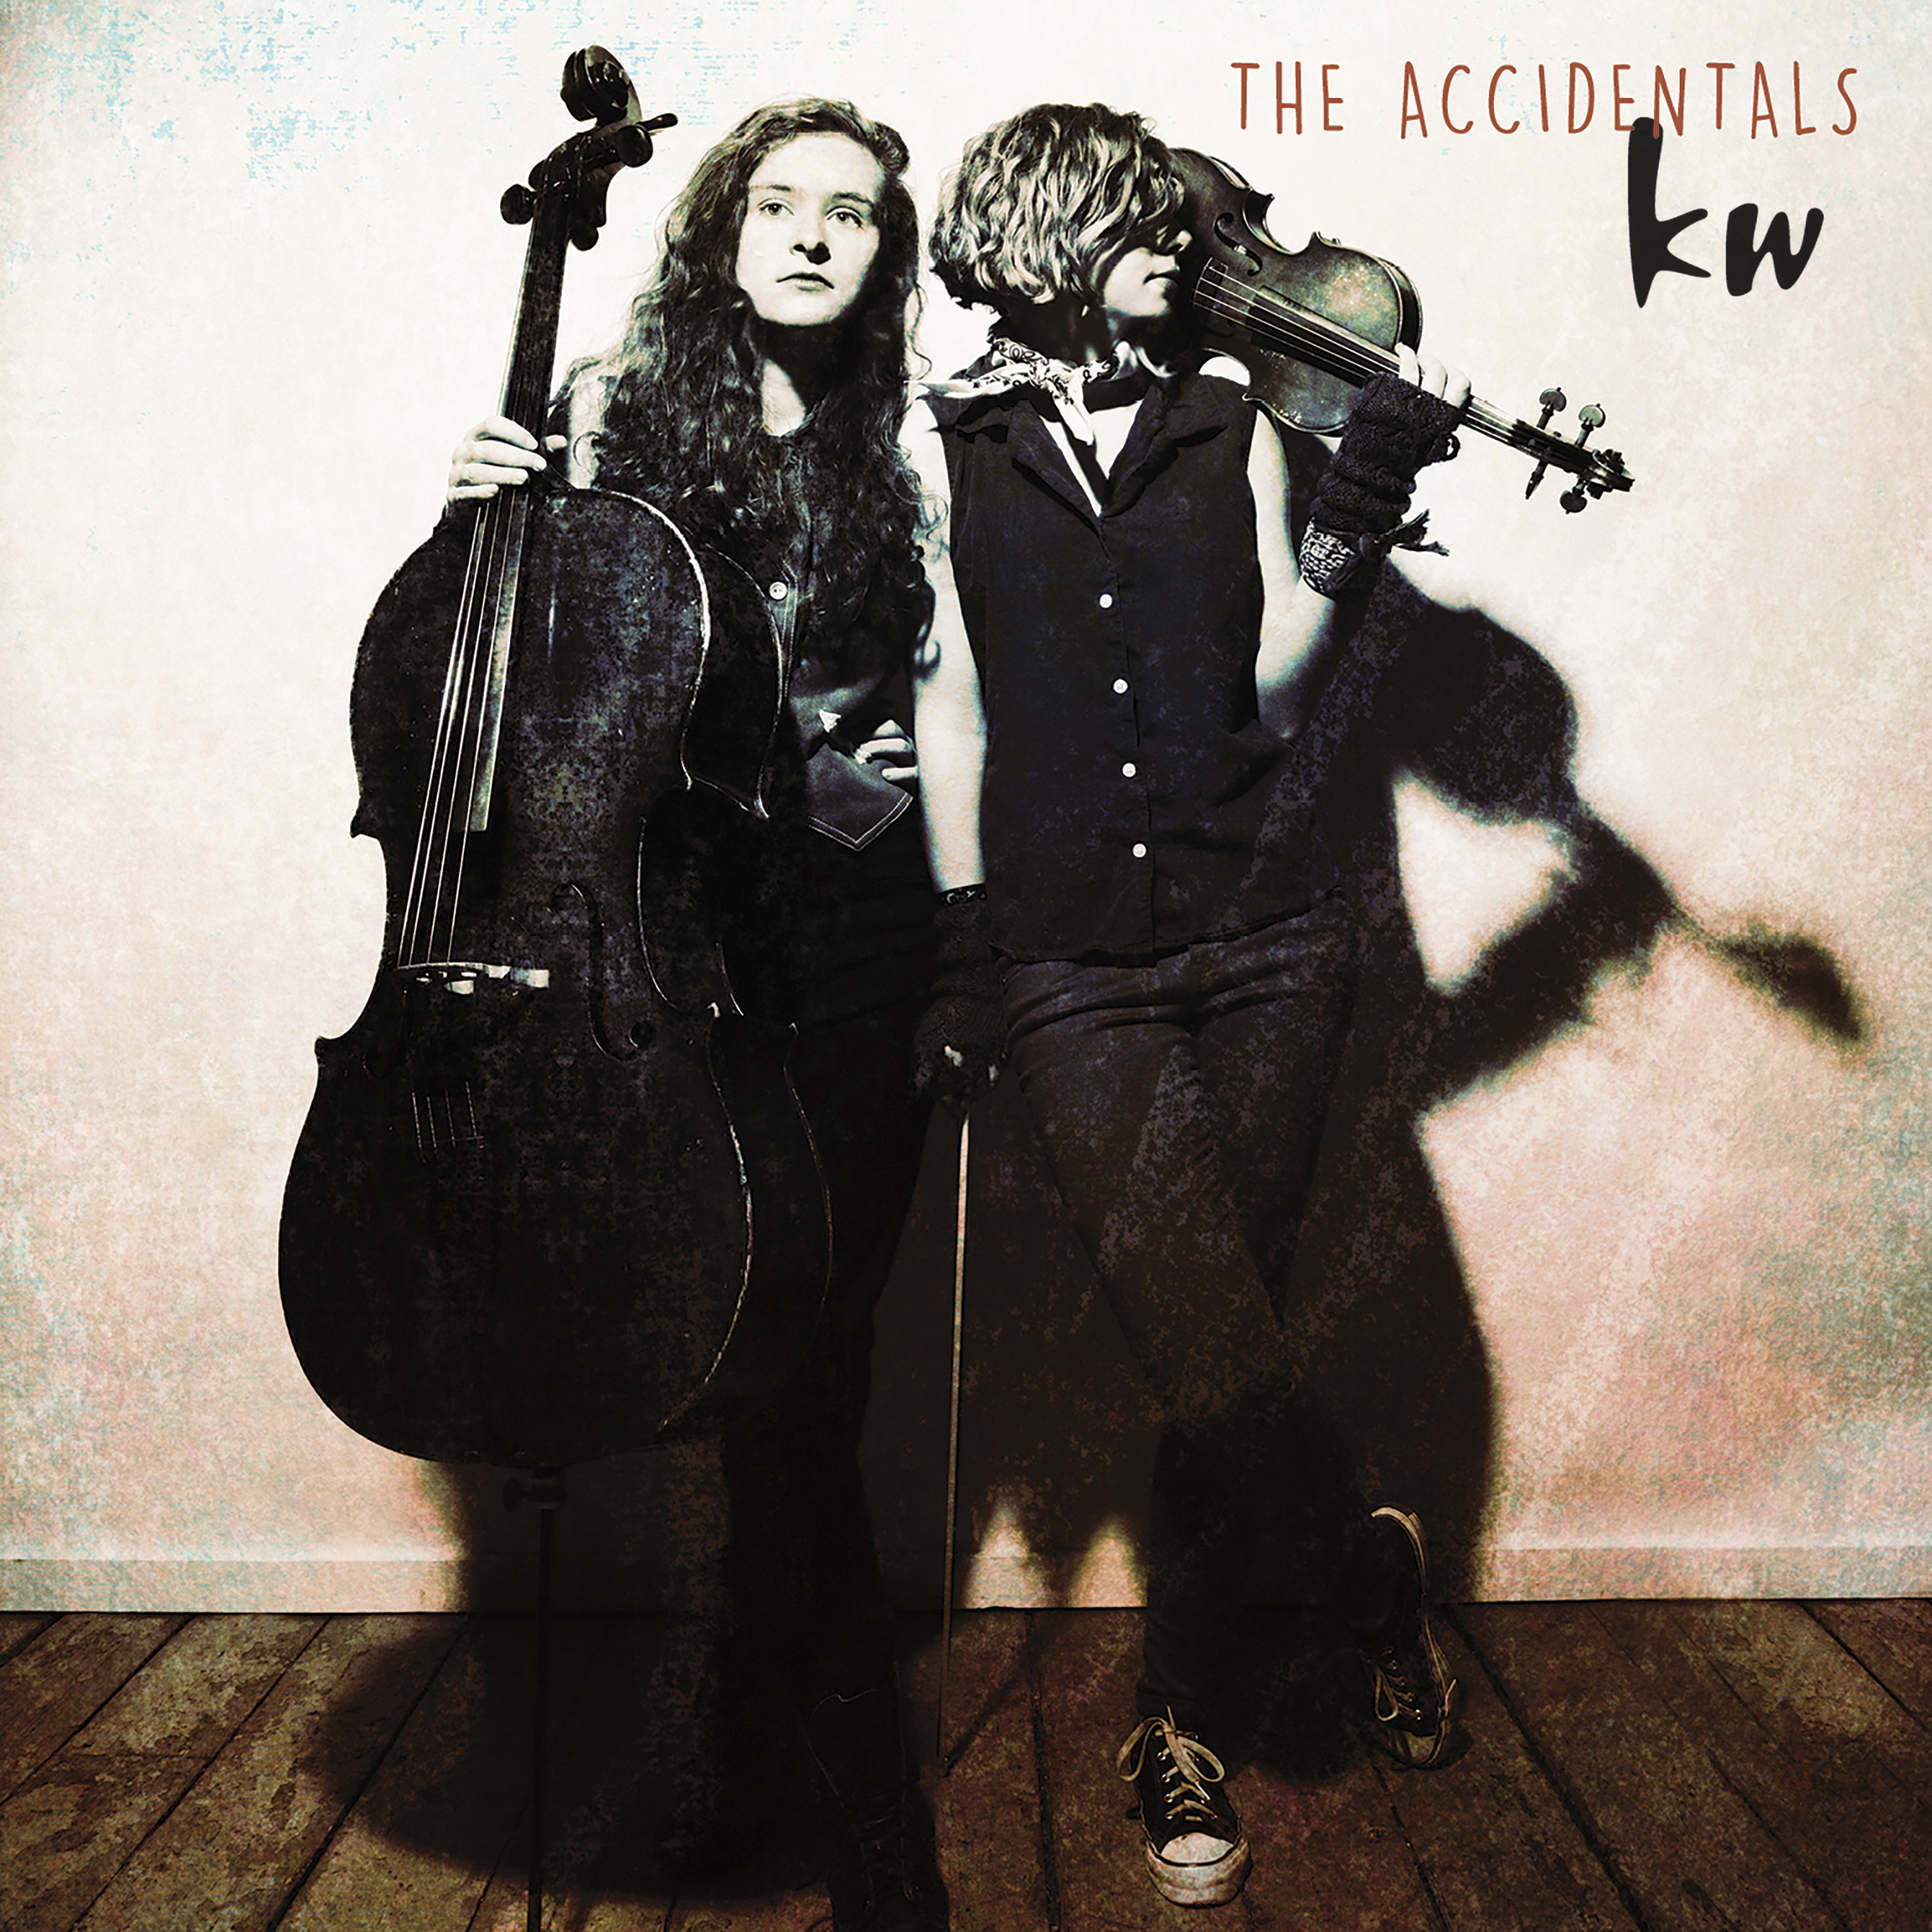 Alternative folk-rock band, The Accidentals, release the